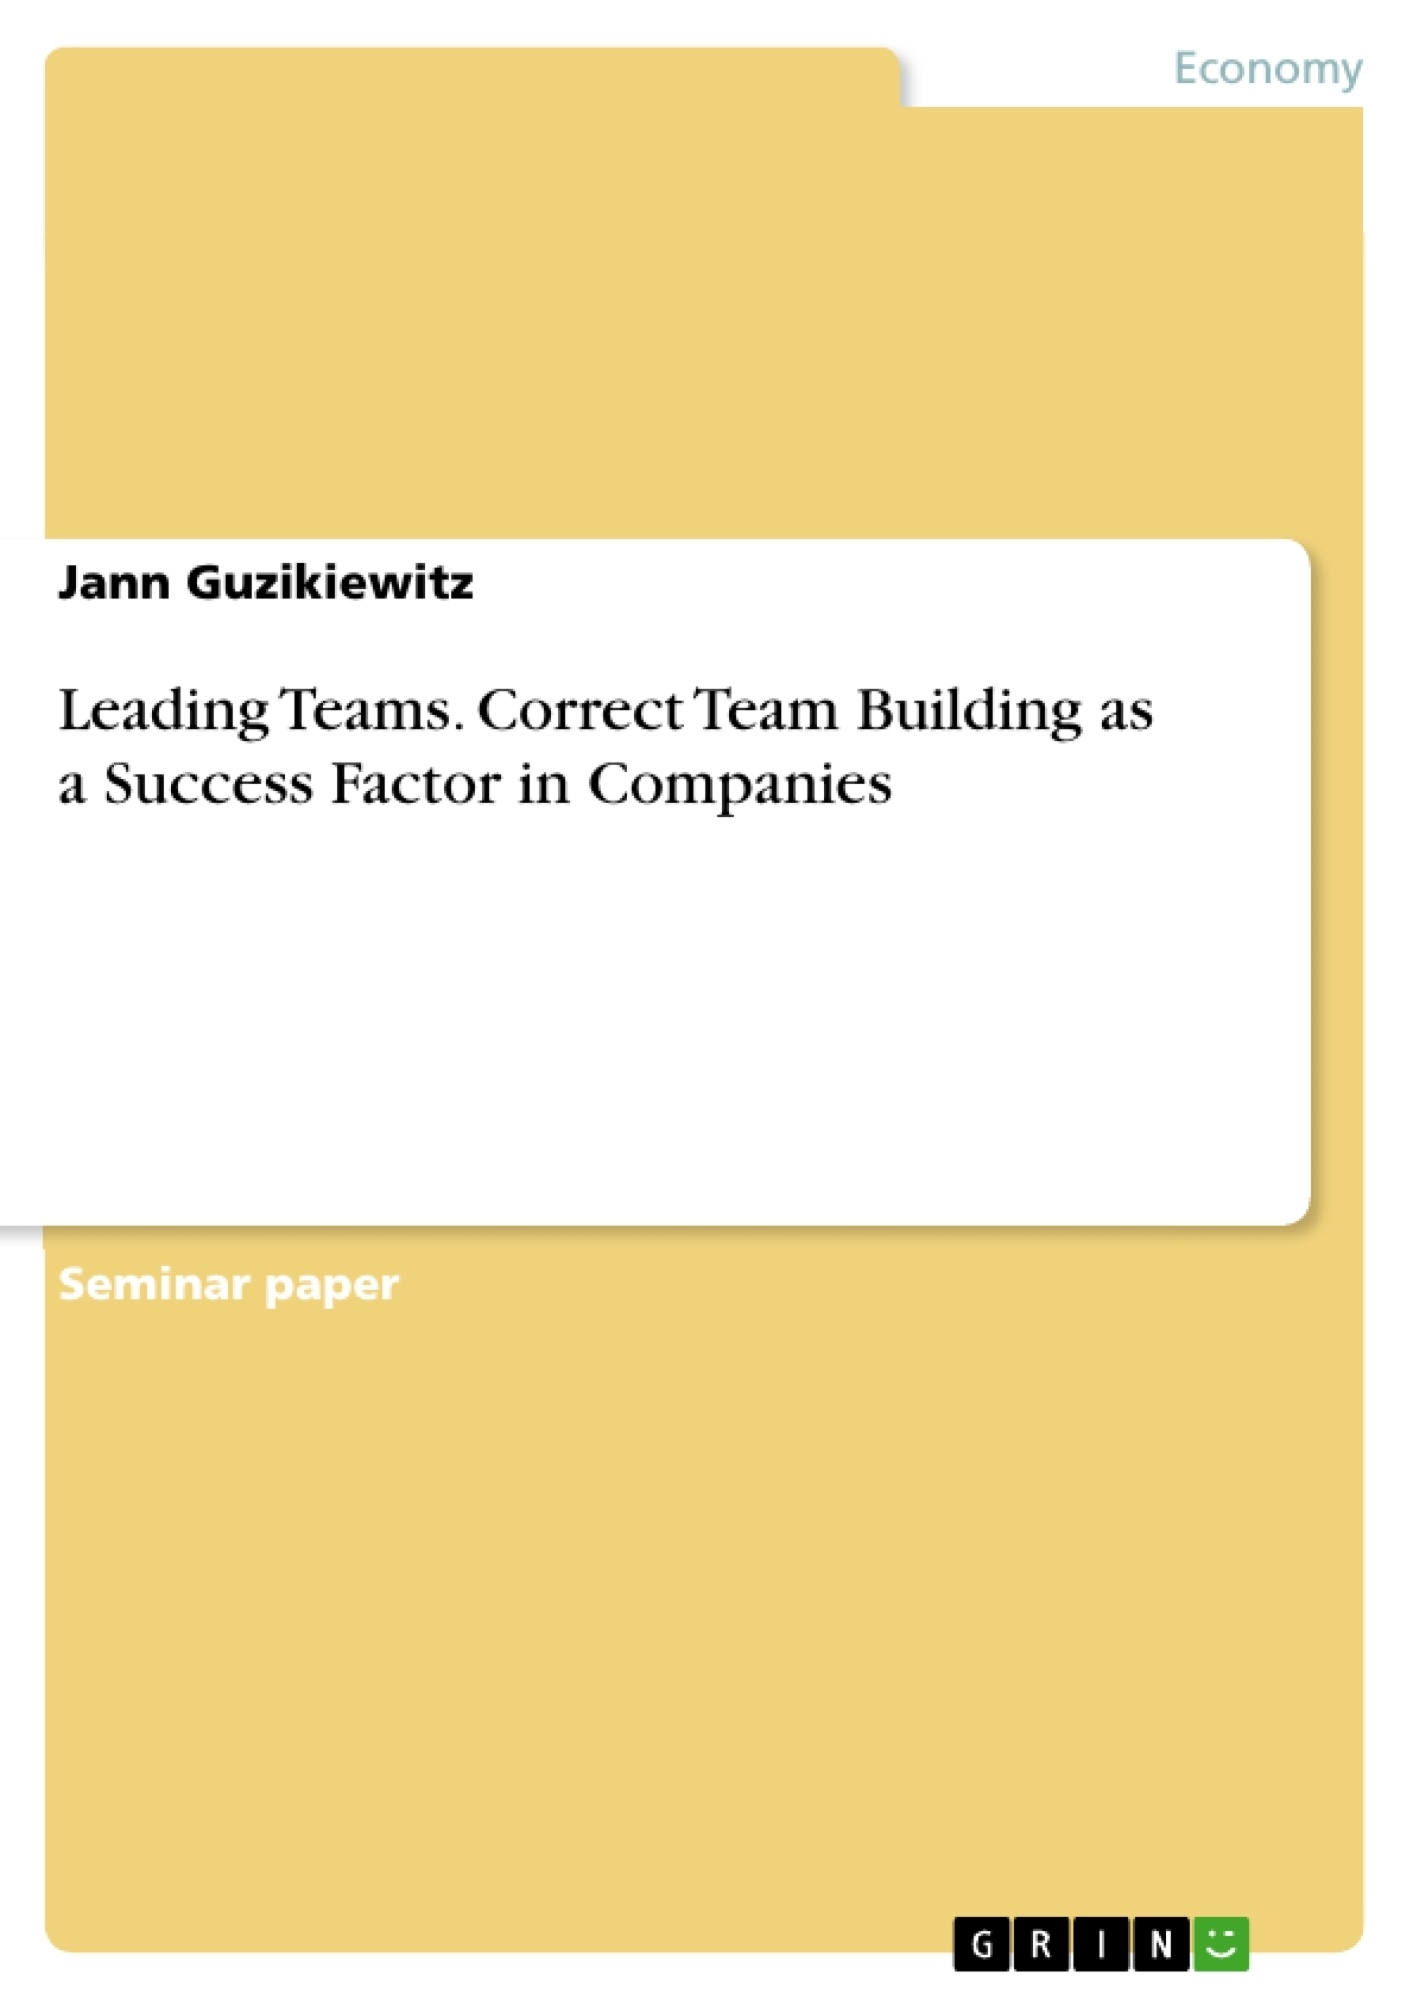 Title: Leading Teams. Correct Team Building as a Success Factor in Companies